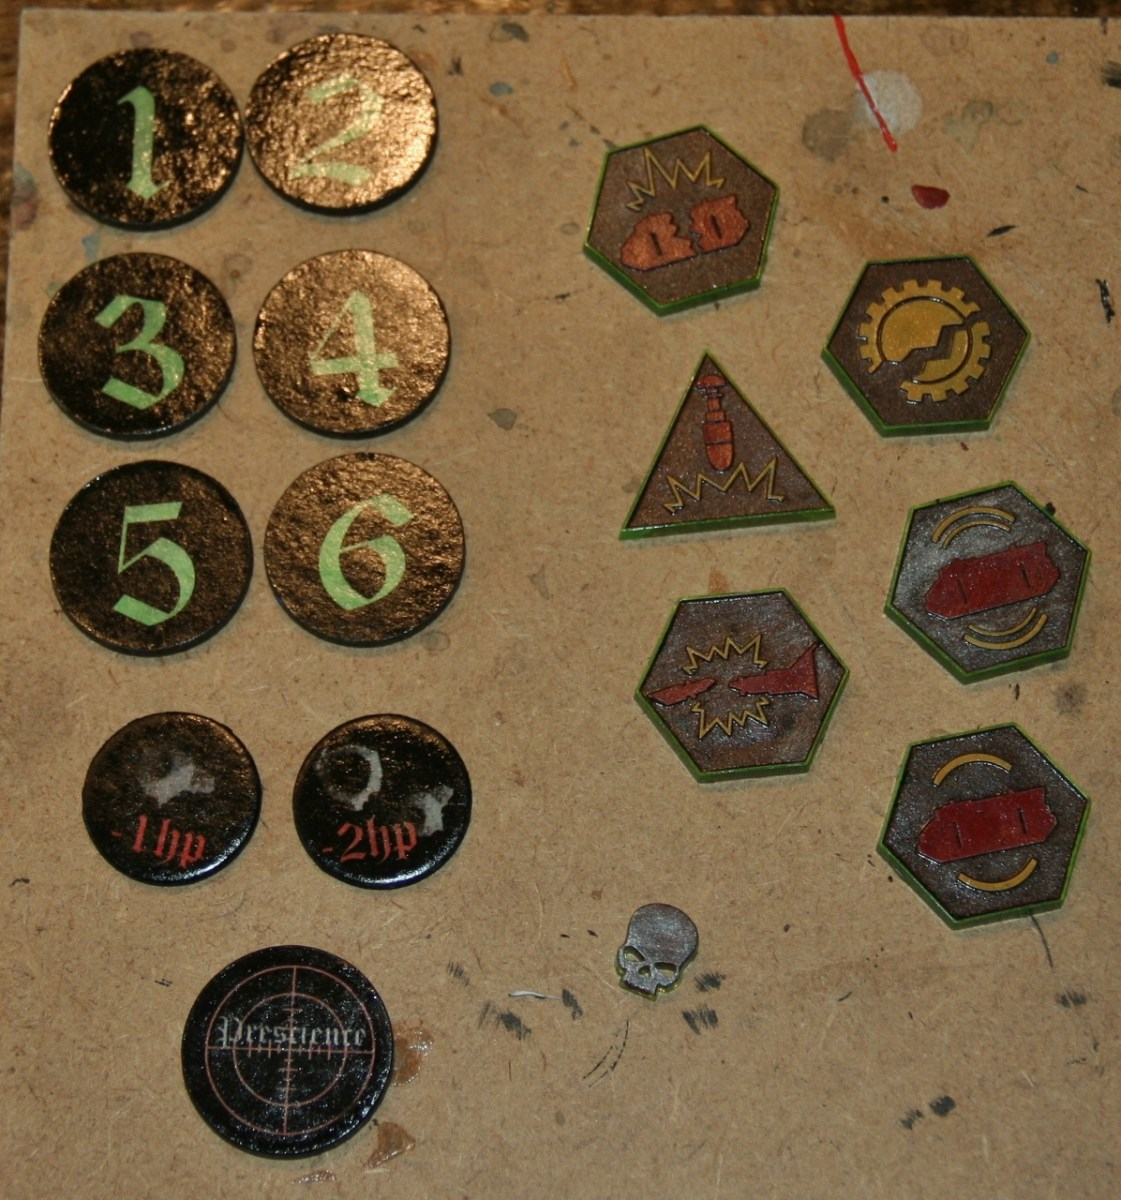 Objective and Status Markers